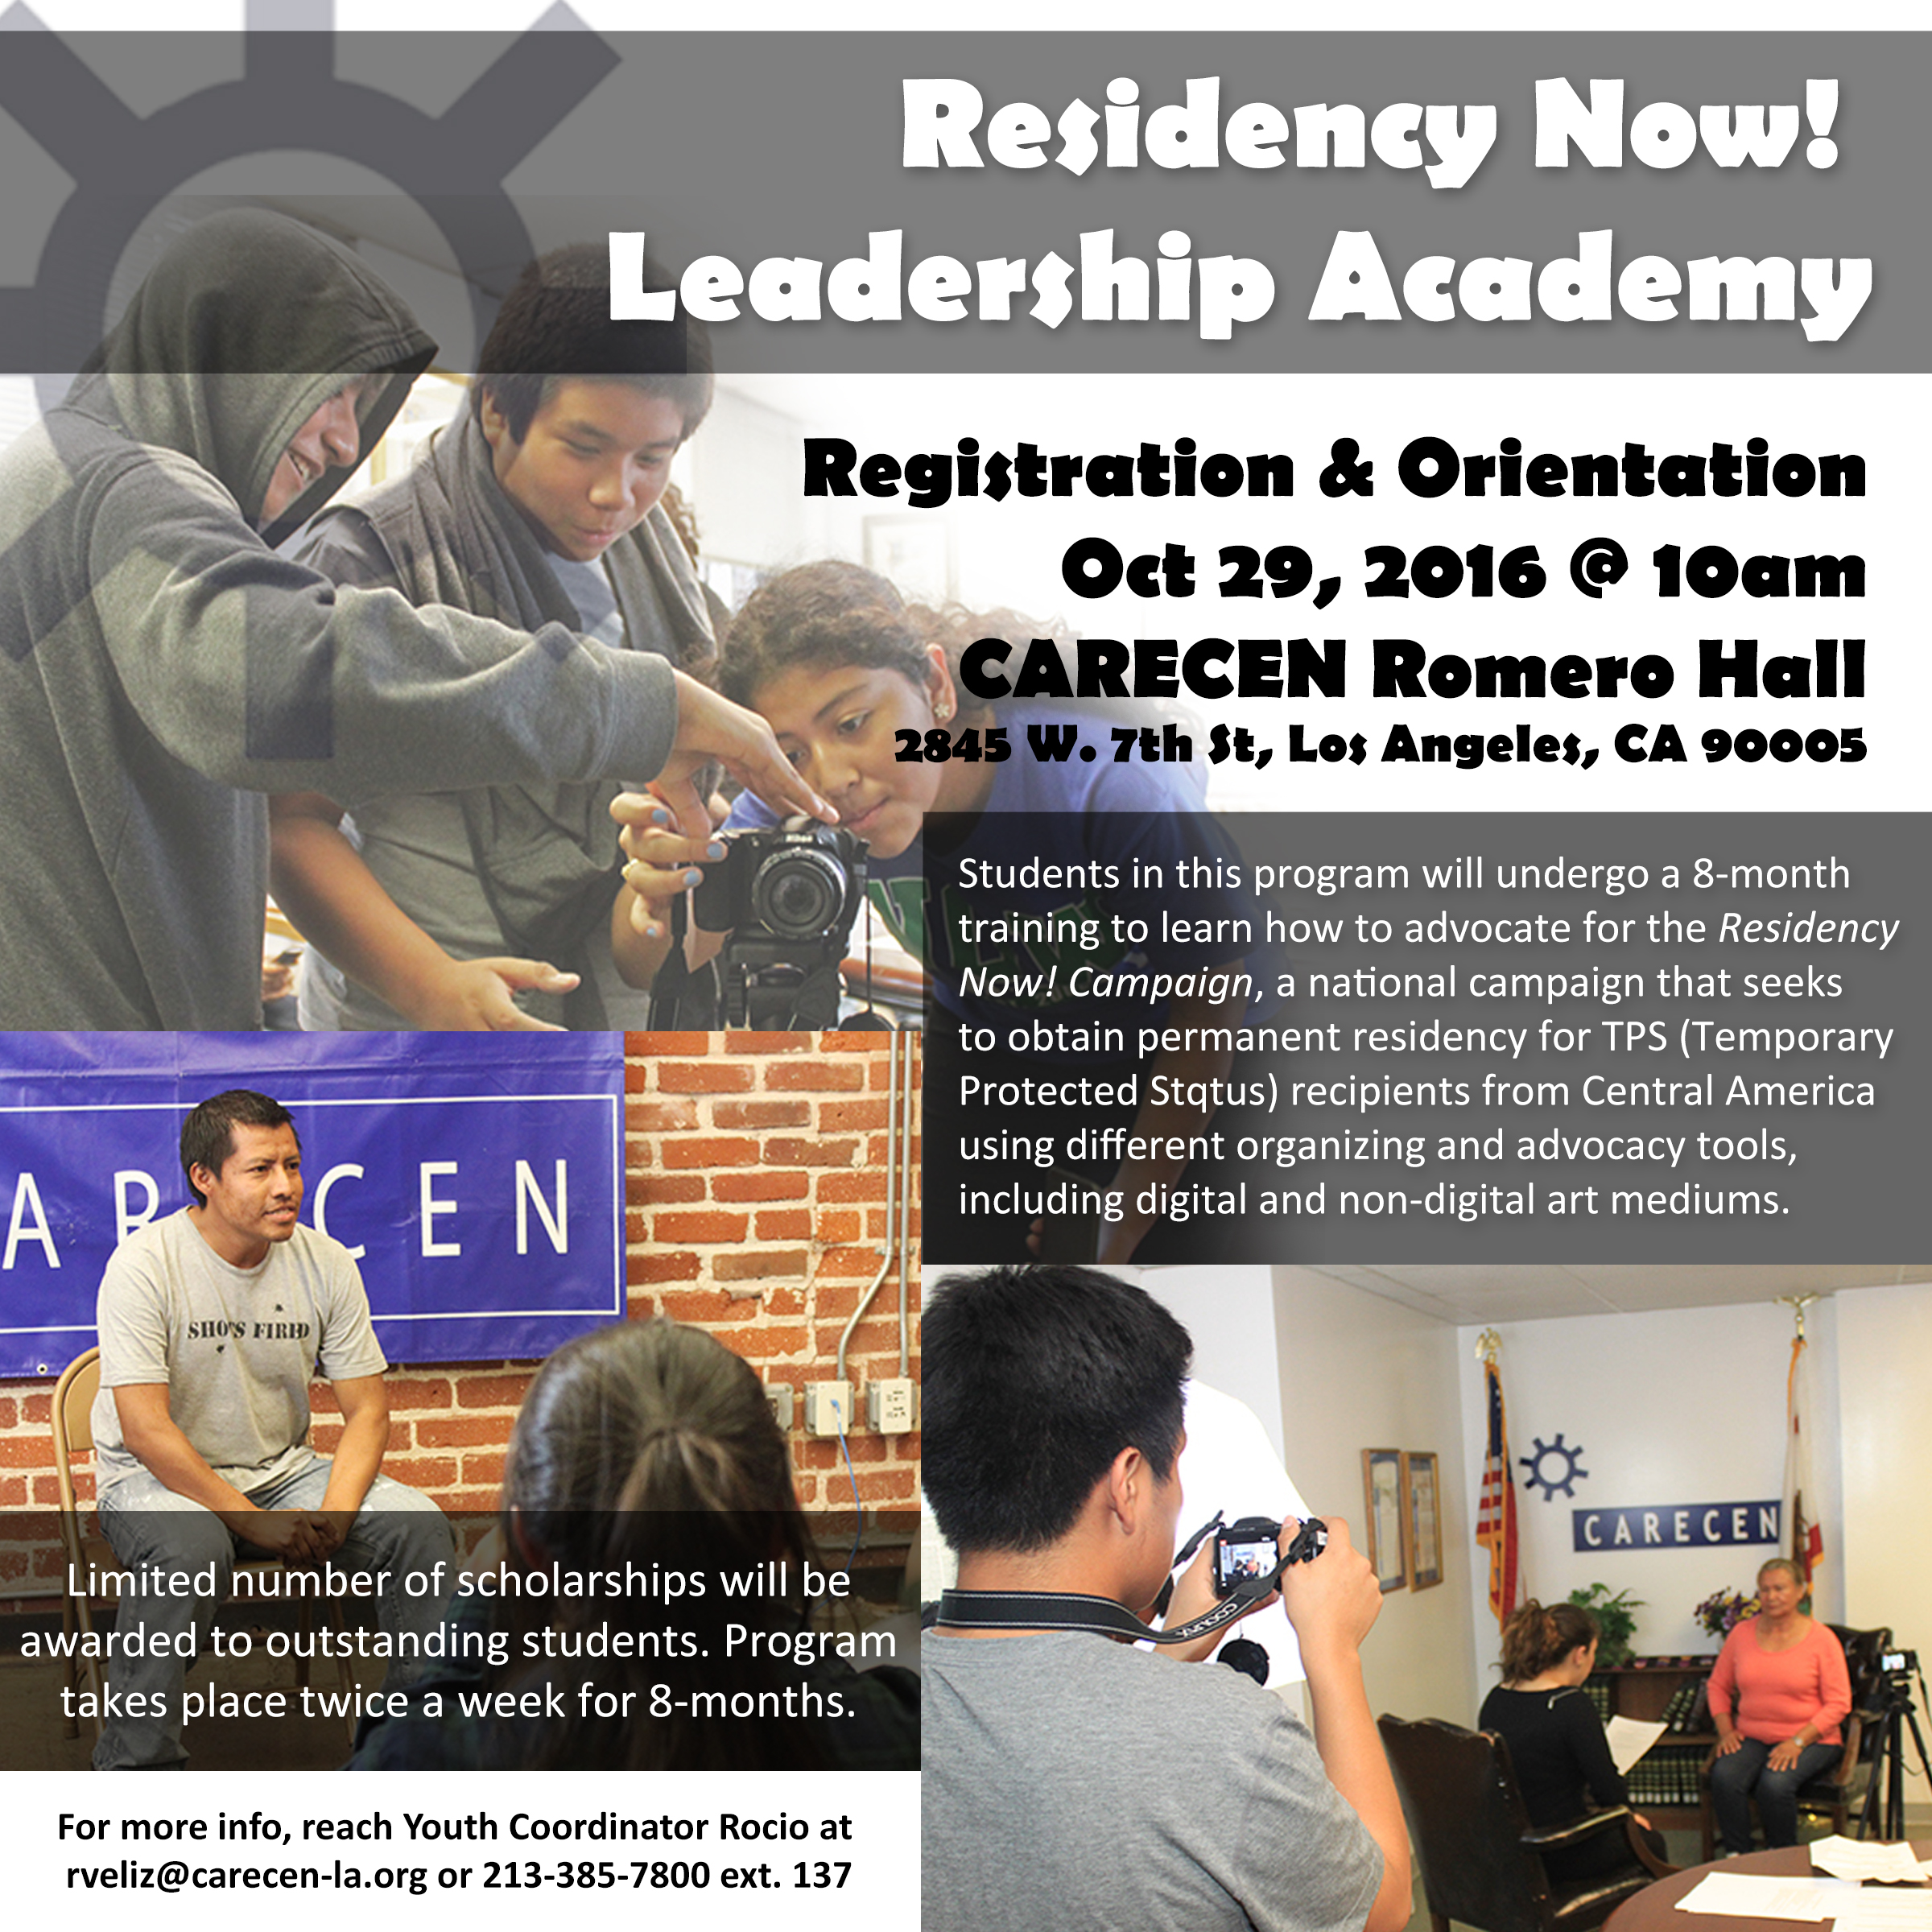 Residency_Now_Leadership_Academy_Flyer_9-2016_v2.jpg